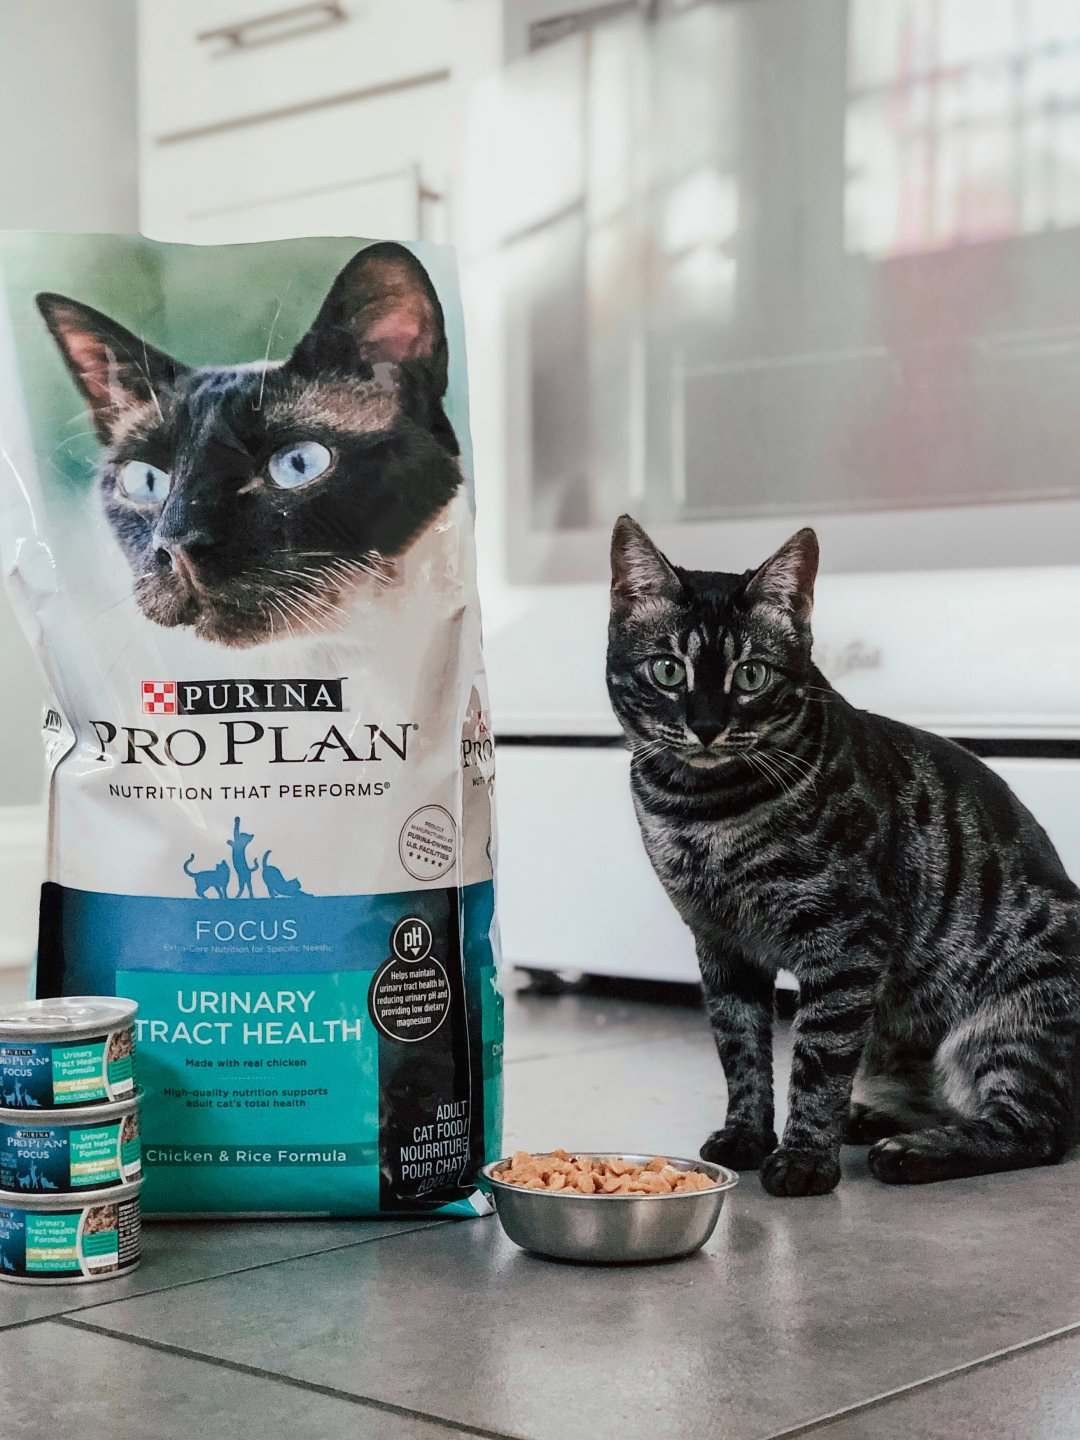 How to Ensure Your Pet is Getting the Best Nutrition